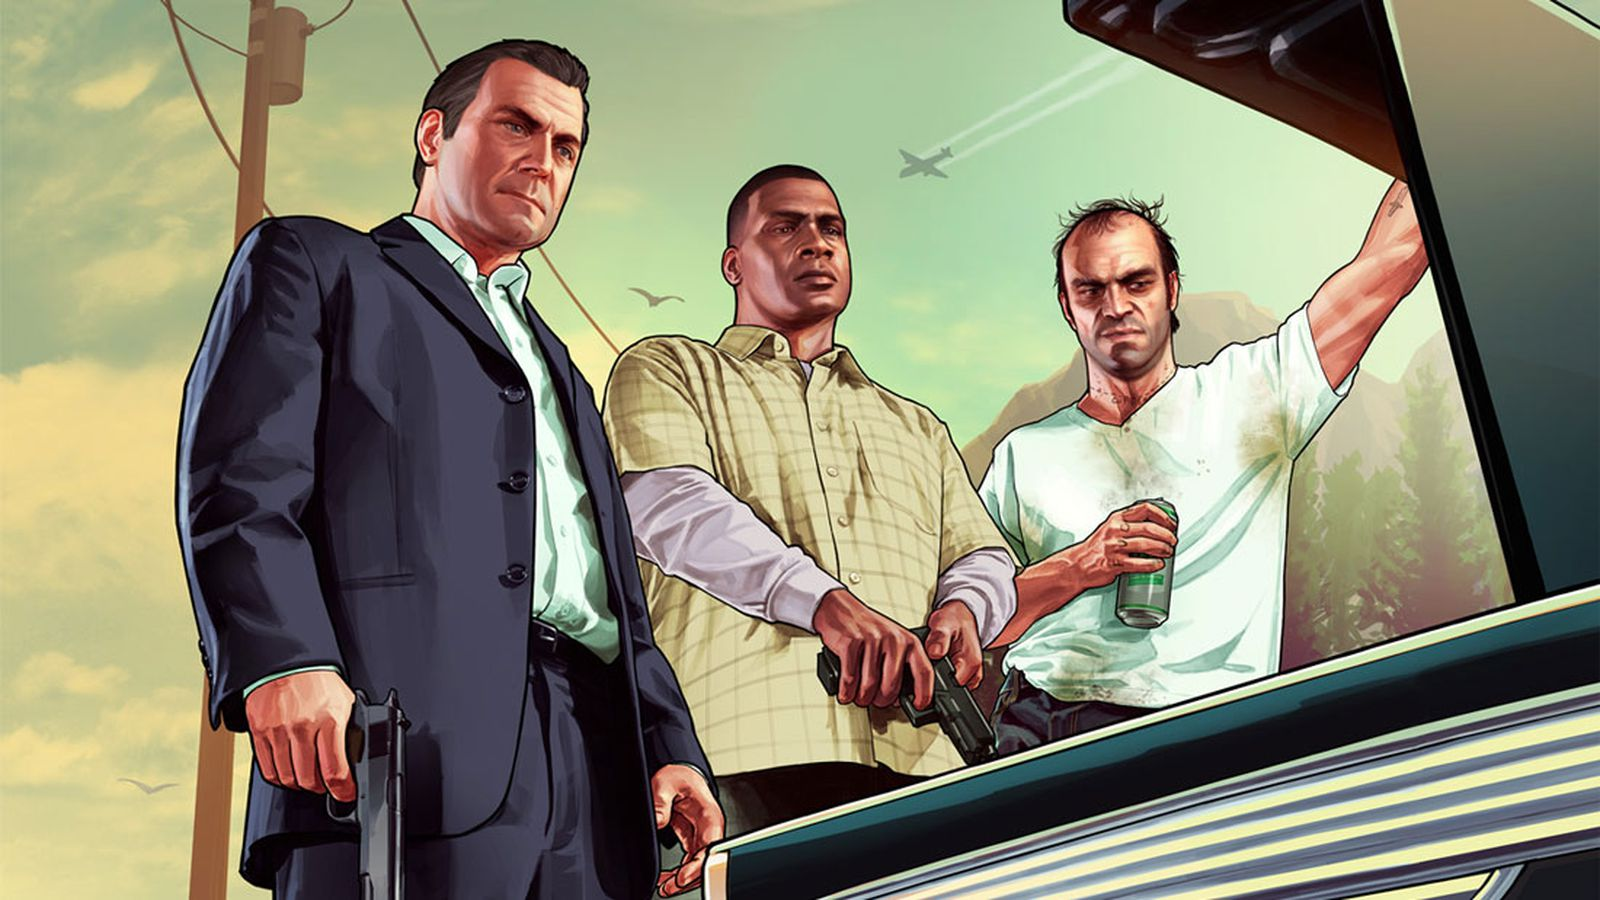 Grand Theft Auto 5 trailers delve into protagonists Michael